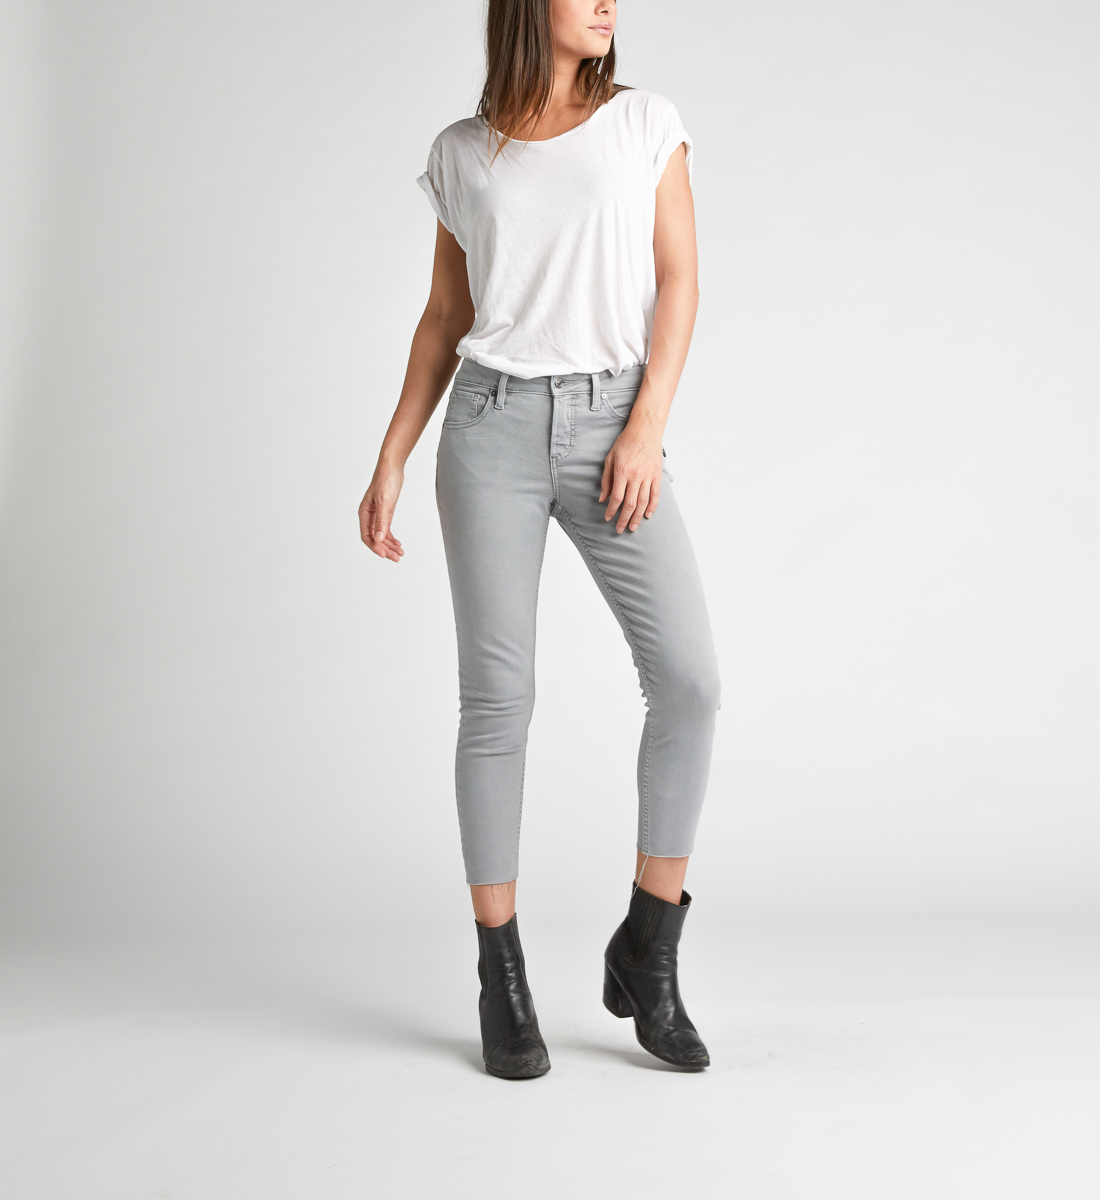 Avery High Rise Skinny Crop Pants,Grey Alt Image 1